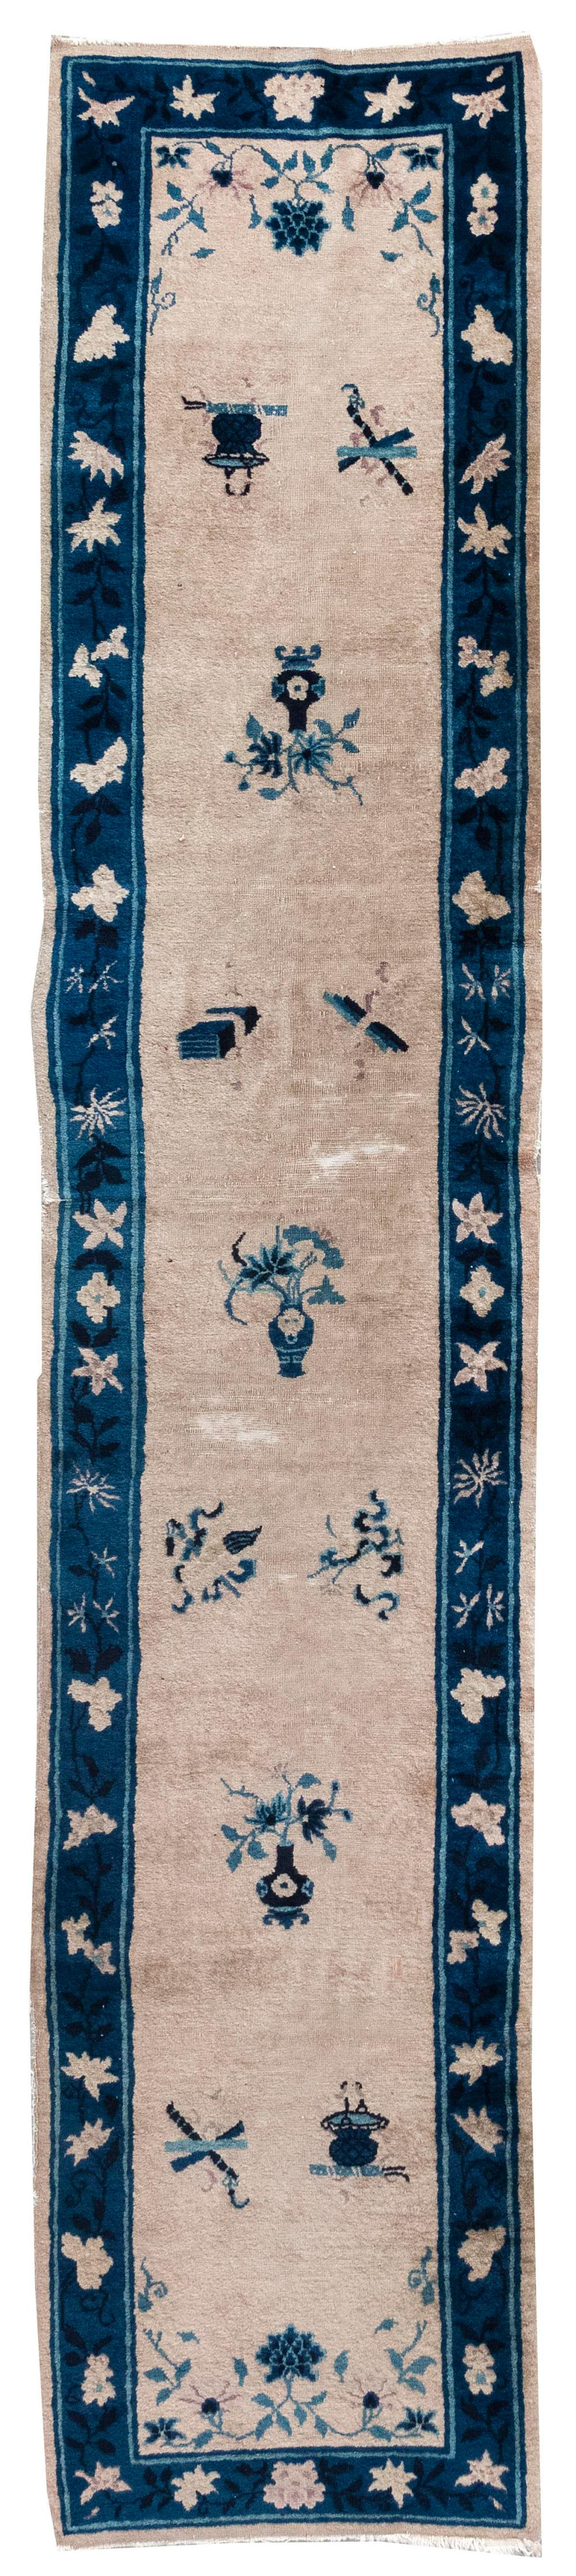 """Lot 1124: ORIENTAL RUG: CHINESE 2'7"""" x 12'8"""" Ivory field with scattered symbolic elements and blue flower vases. Blue border with vines and bl."""